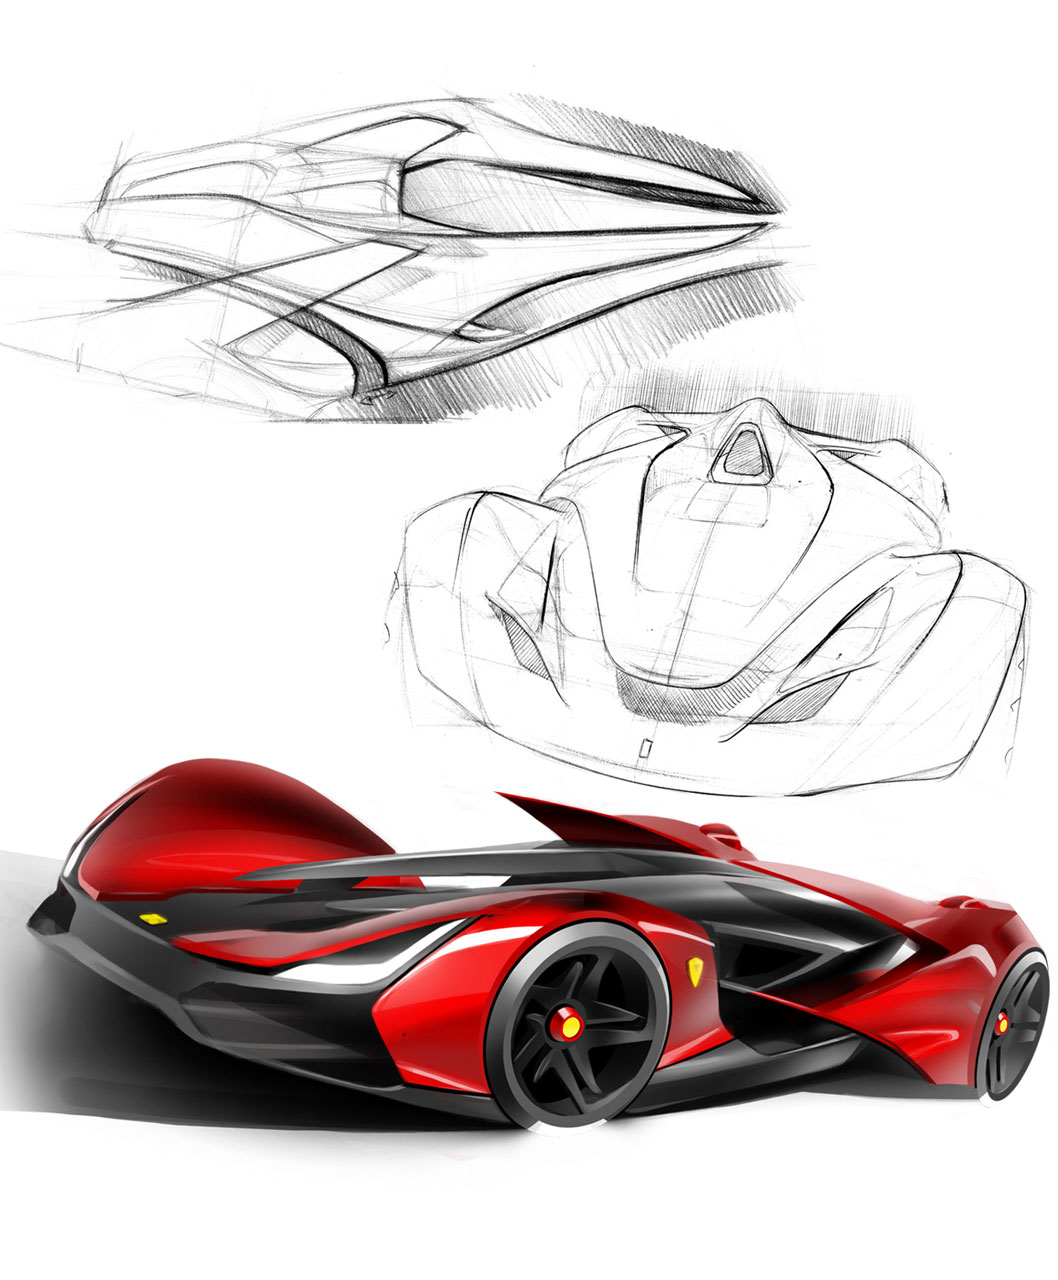 1058x1280 Ferrari Pegaso Design Sketches